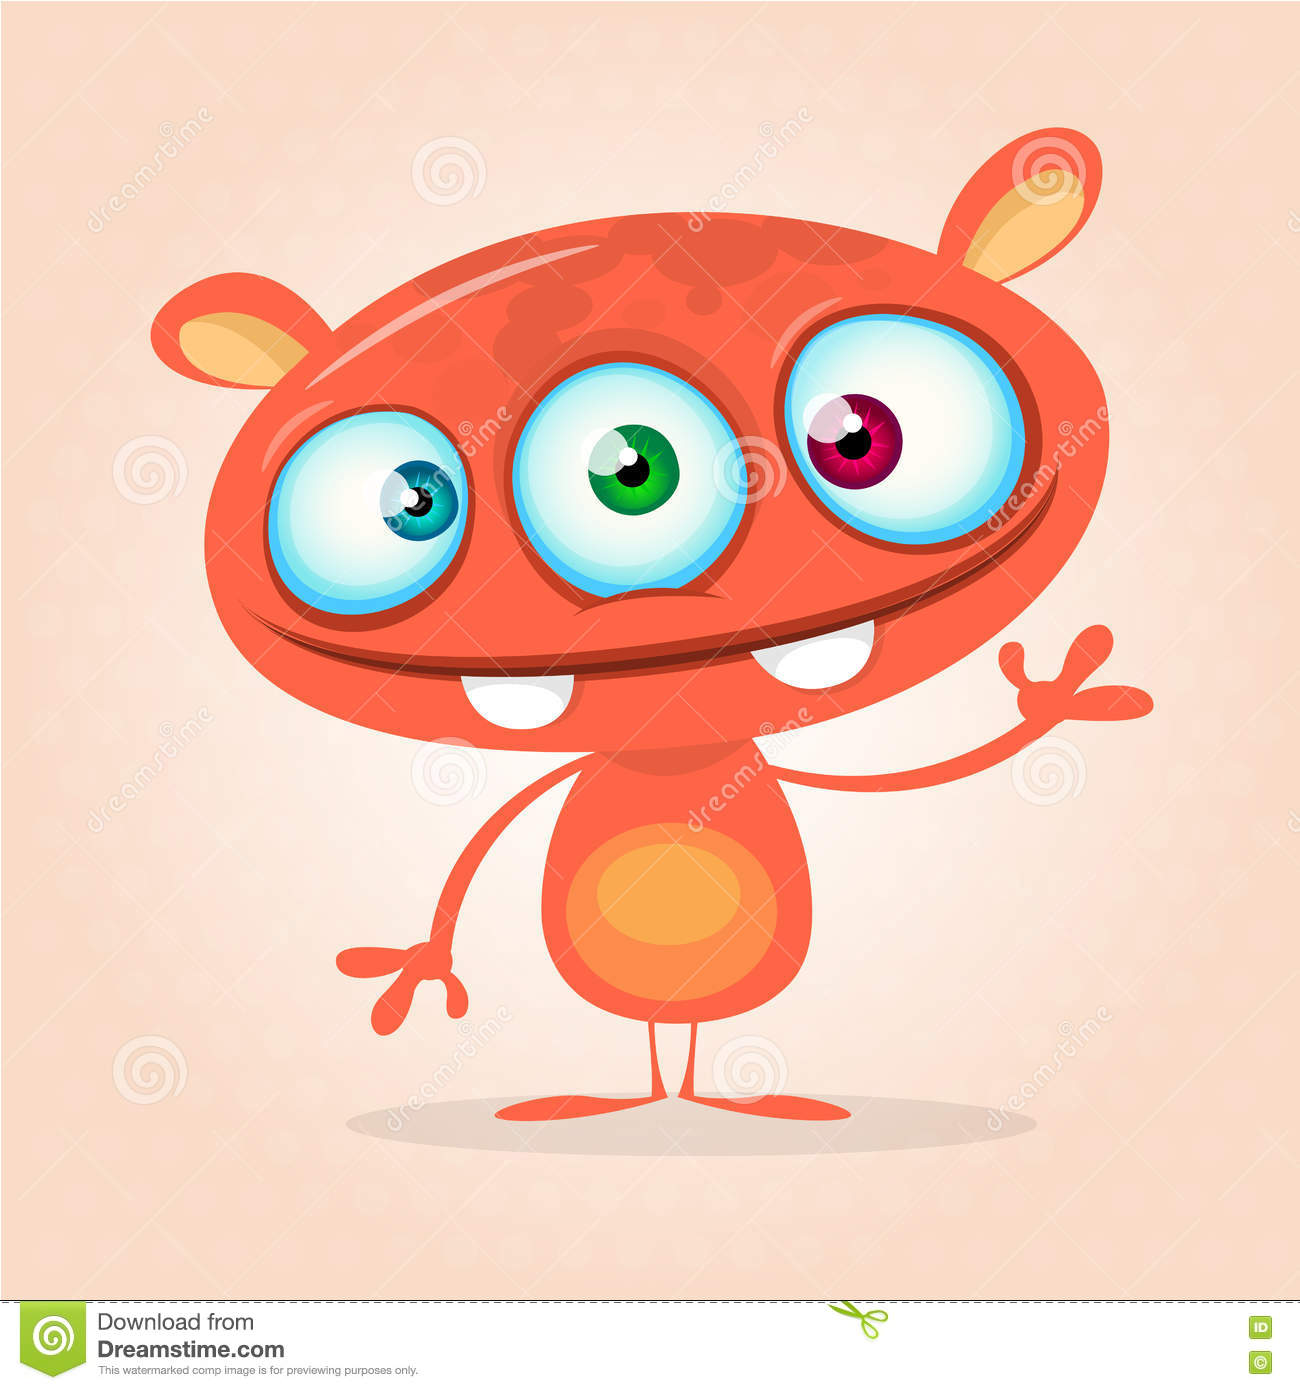 Vector cute caroon monster alien. Halloween monster character with three eyes